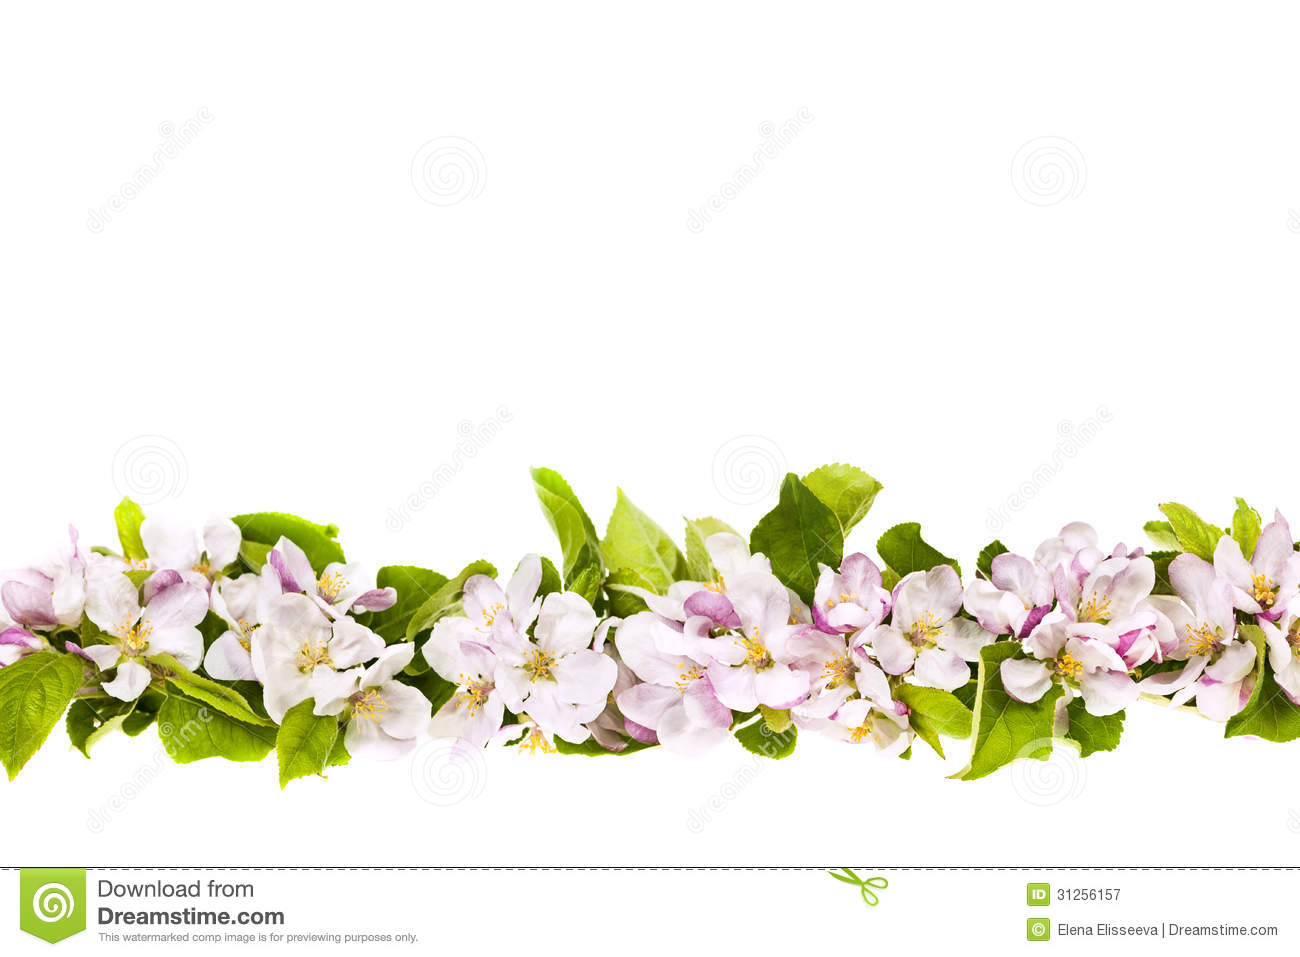 Apple Blossom Borders Photos Free Royalty Free Stock Photos From Dreamstime